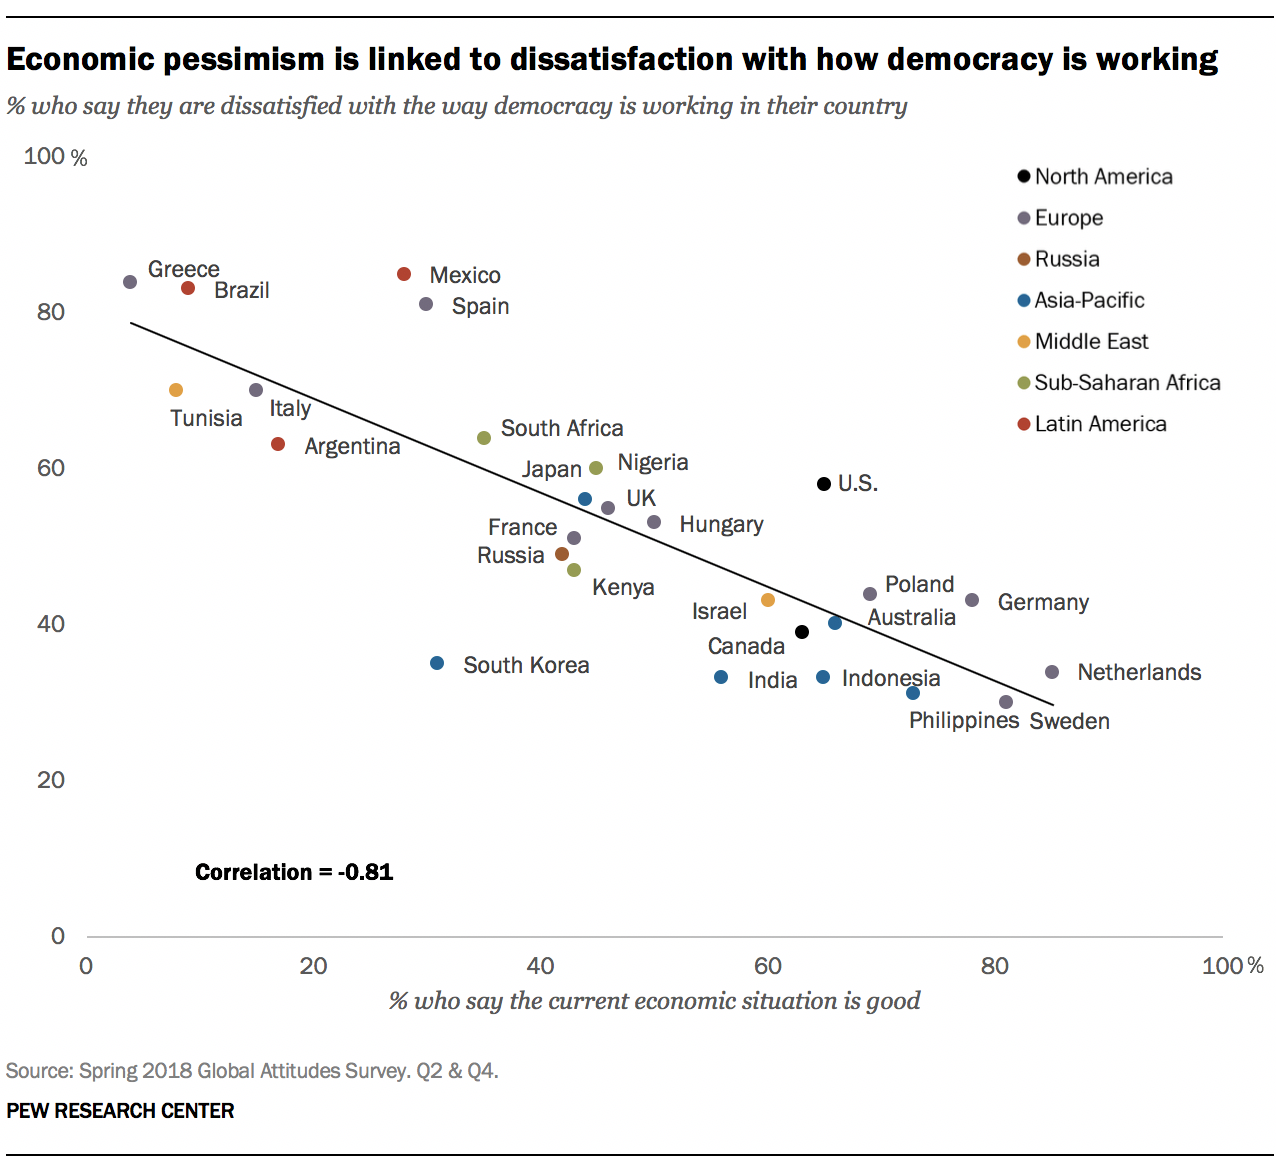 Economic pessimism is linked to dissatisfaction with how democracy is working